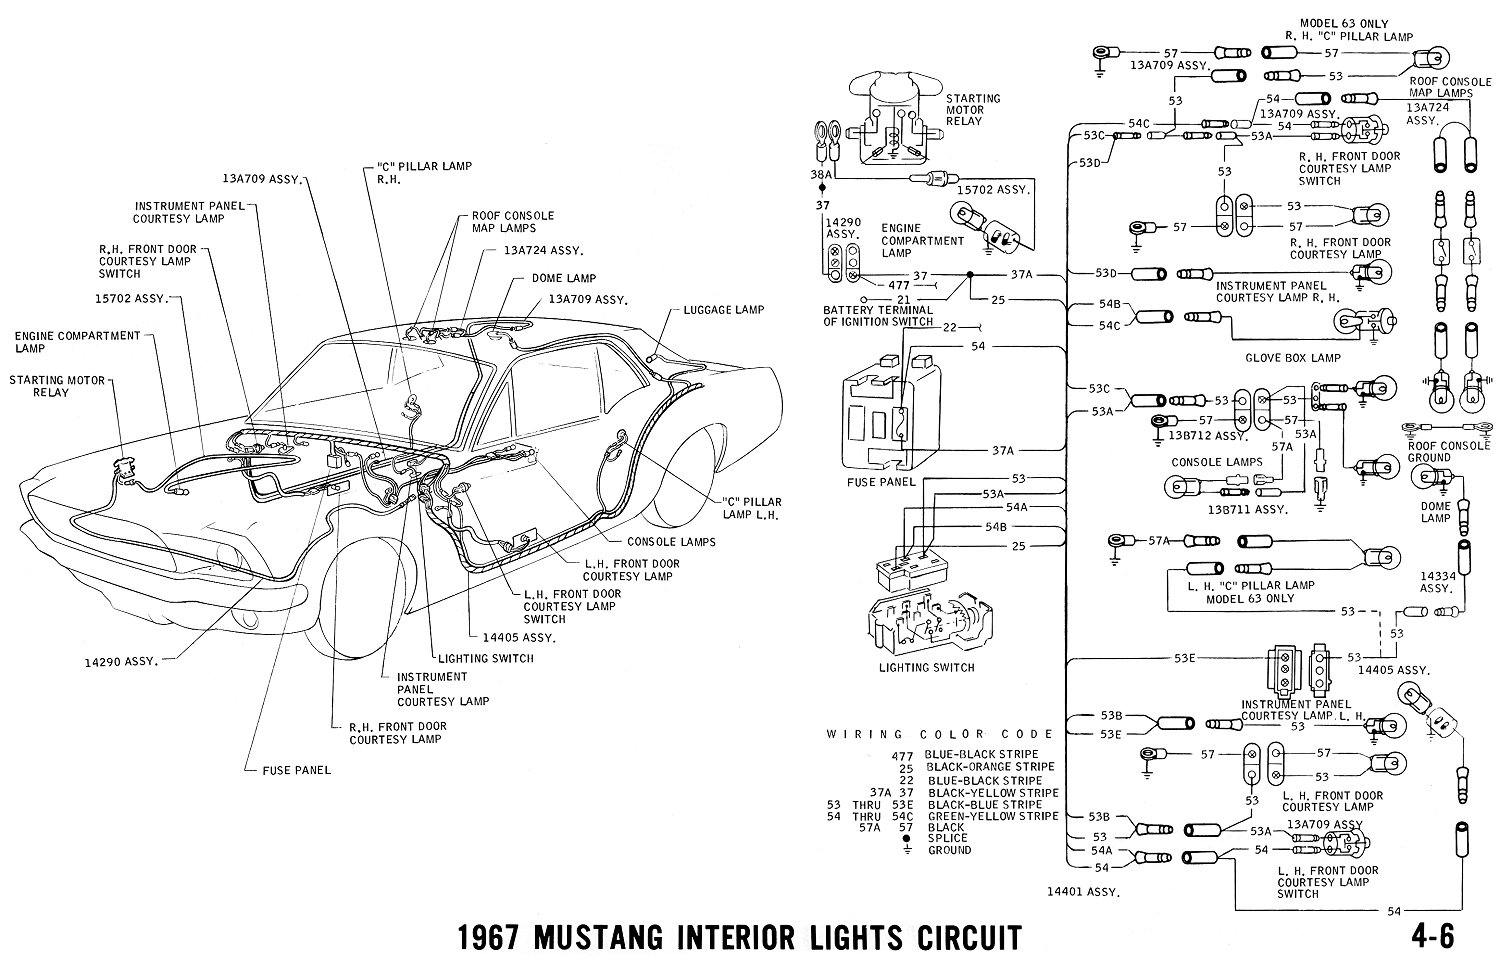 hight resolution of 1967 fairlane engine wiring harness wiring diagram database 1967 mustang wiring harness replacement 1967 mustang wiring harness